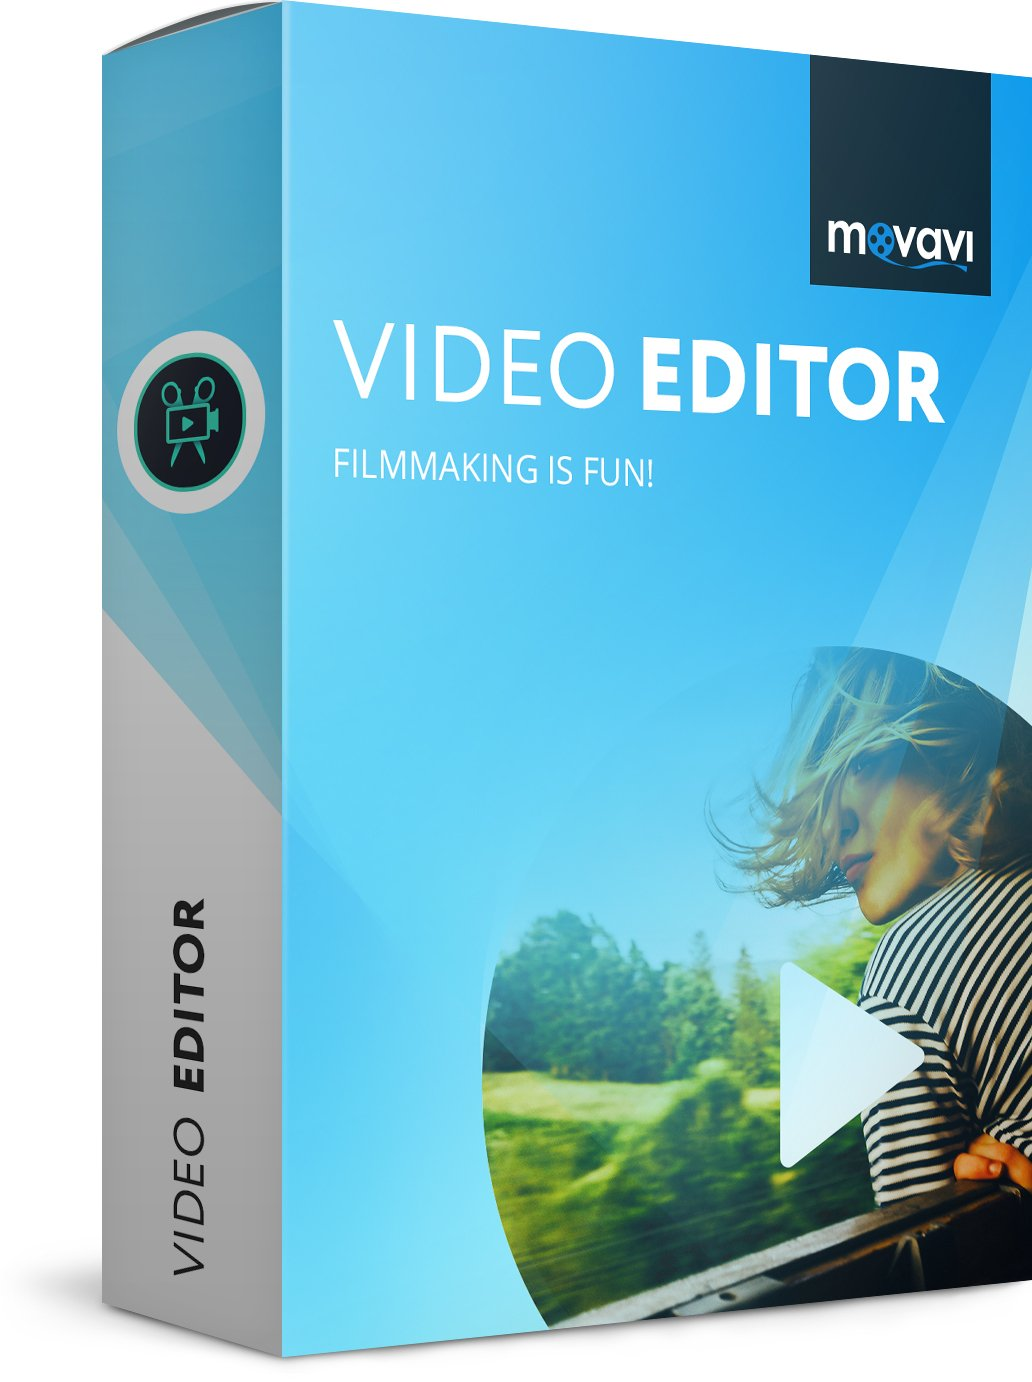 How to Perform Simple Edits to Make Website Videos More Effective